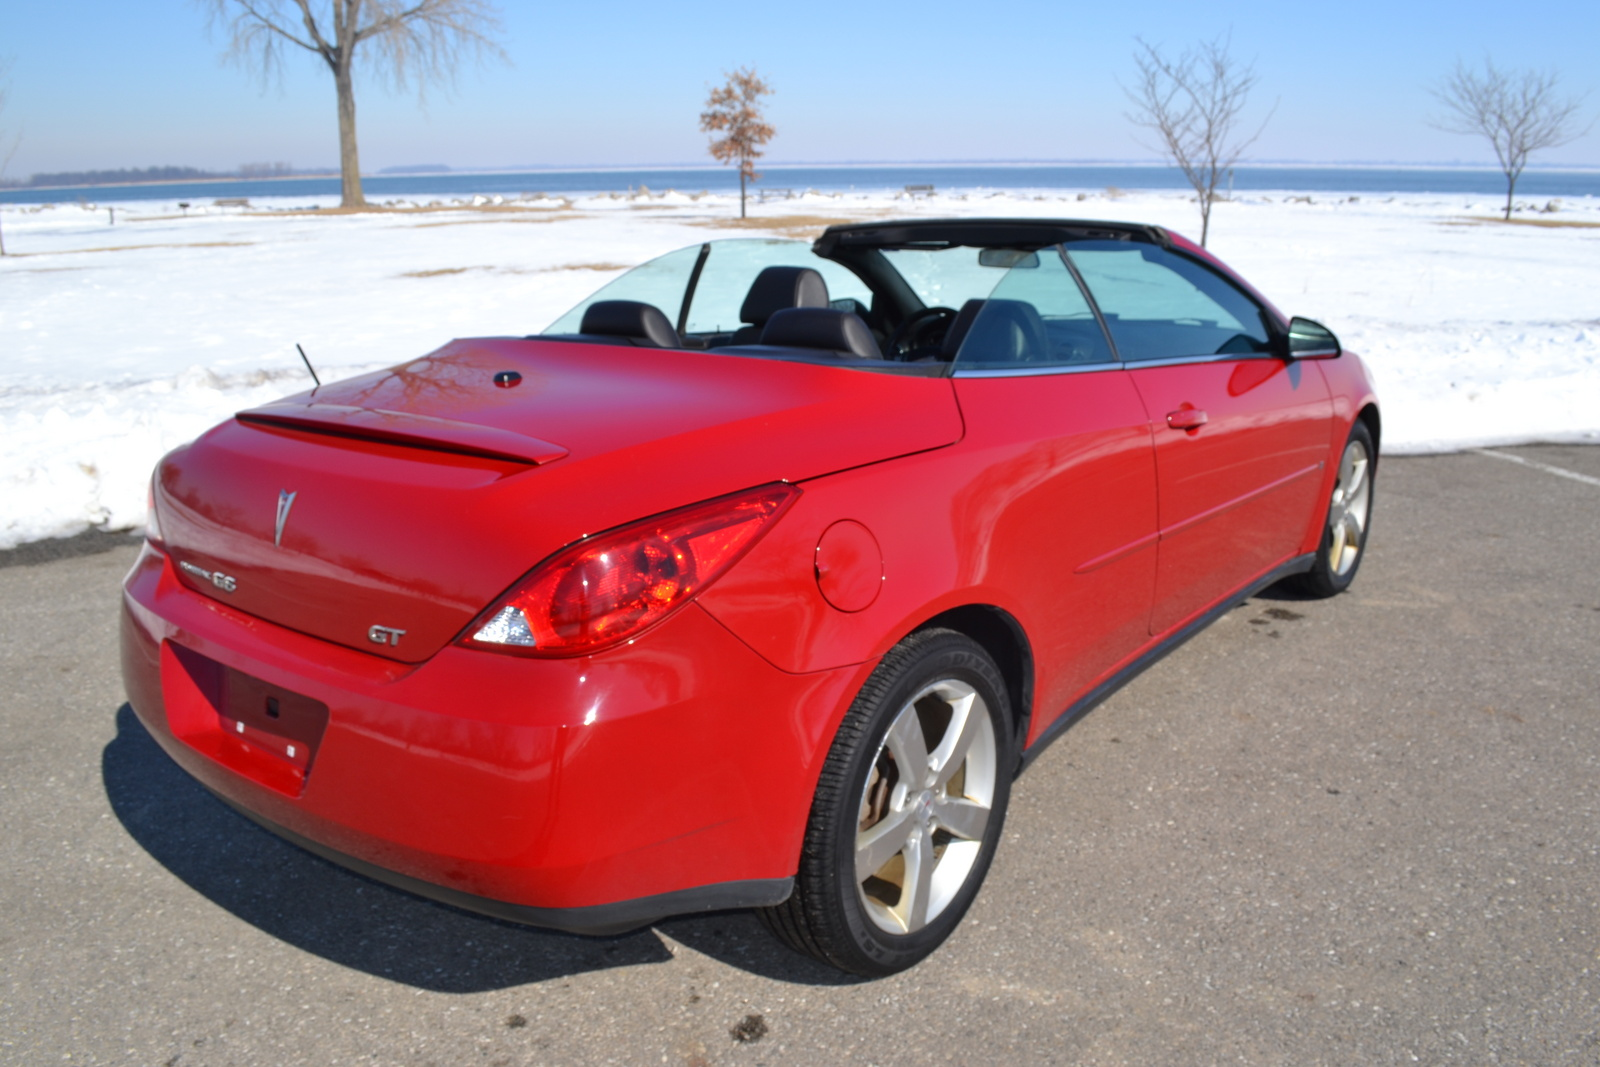 2006 pontiac g6 gt convertible picture exterior. Black Bedroom Furniture Sets. Home Design Ideas